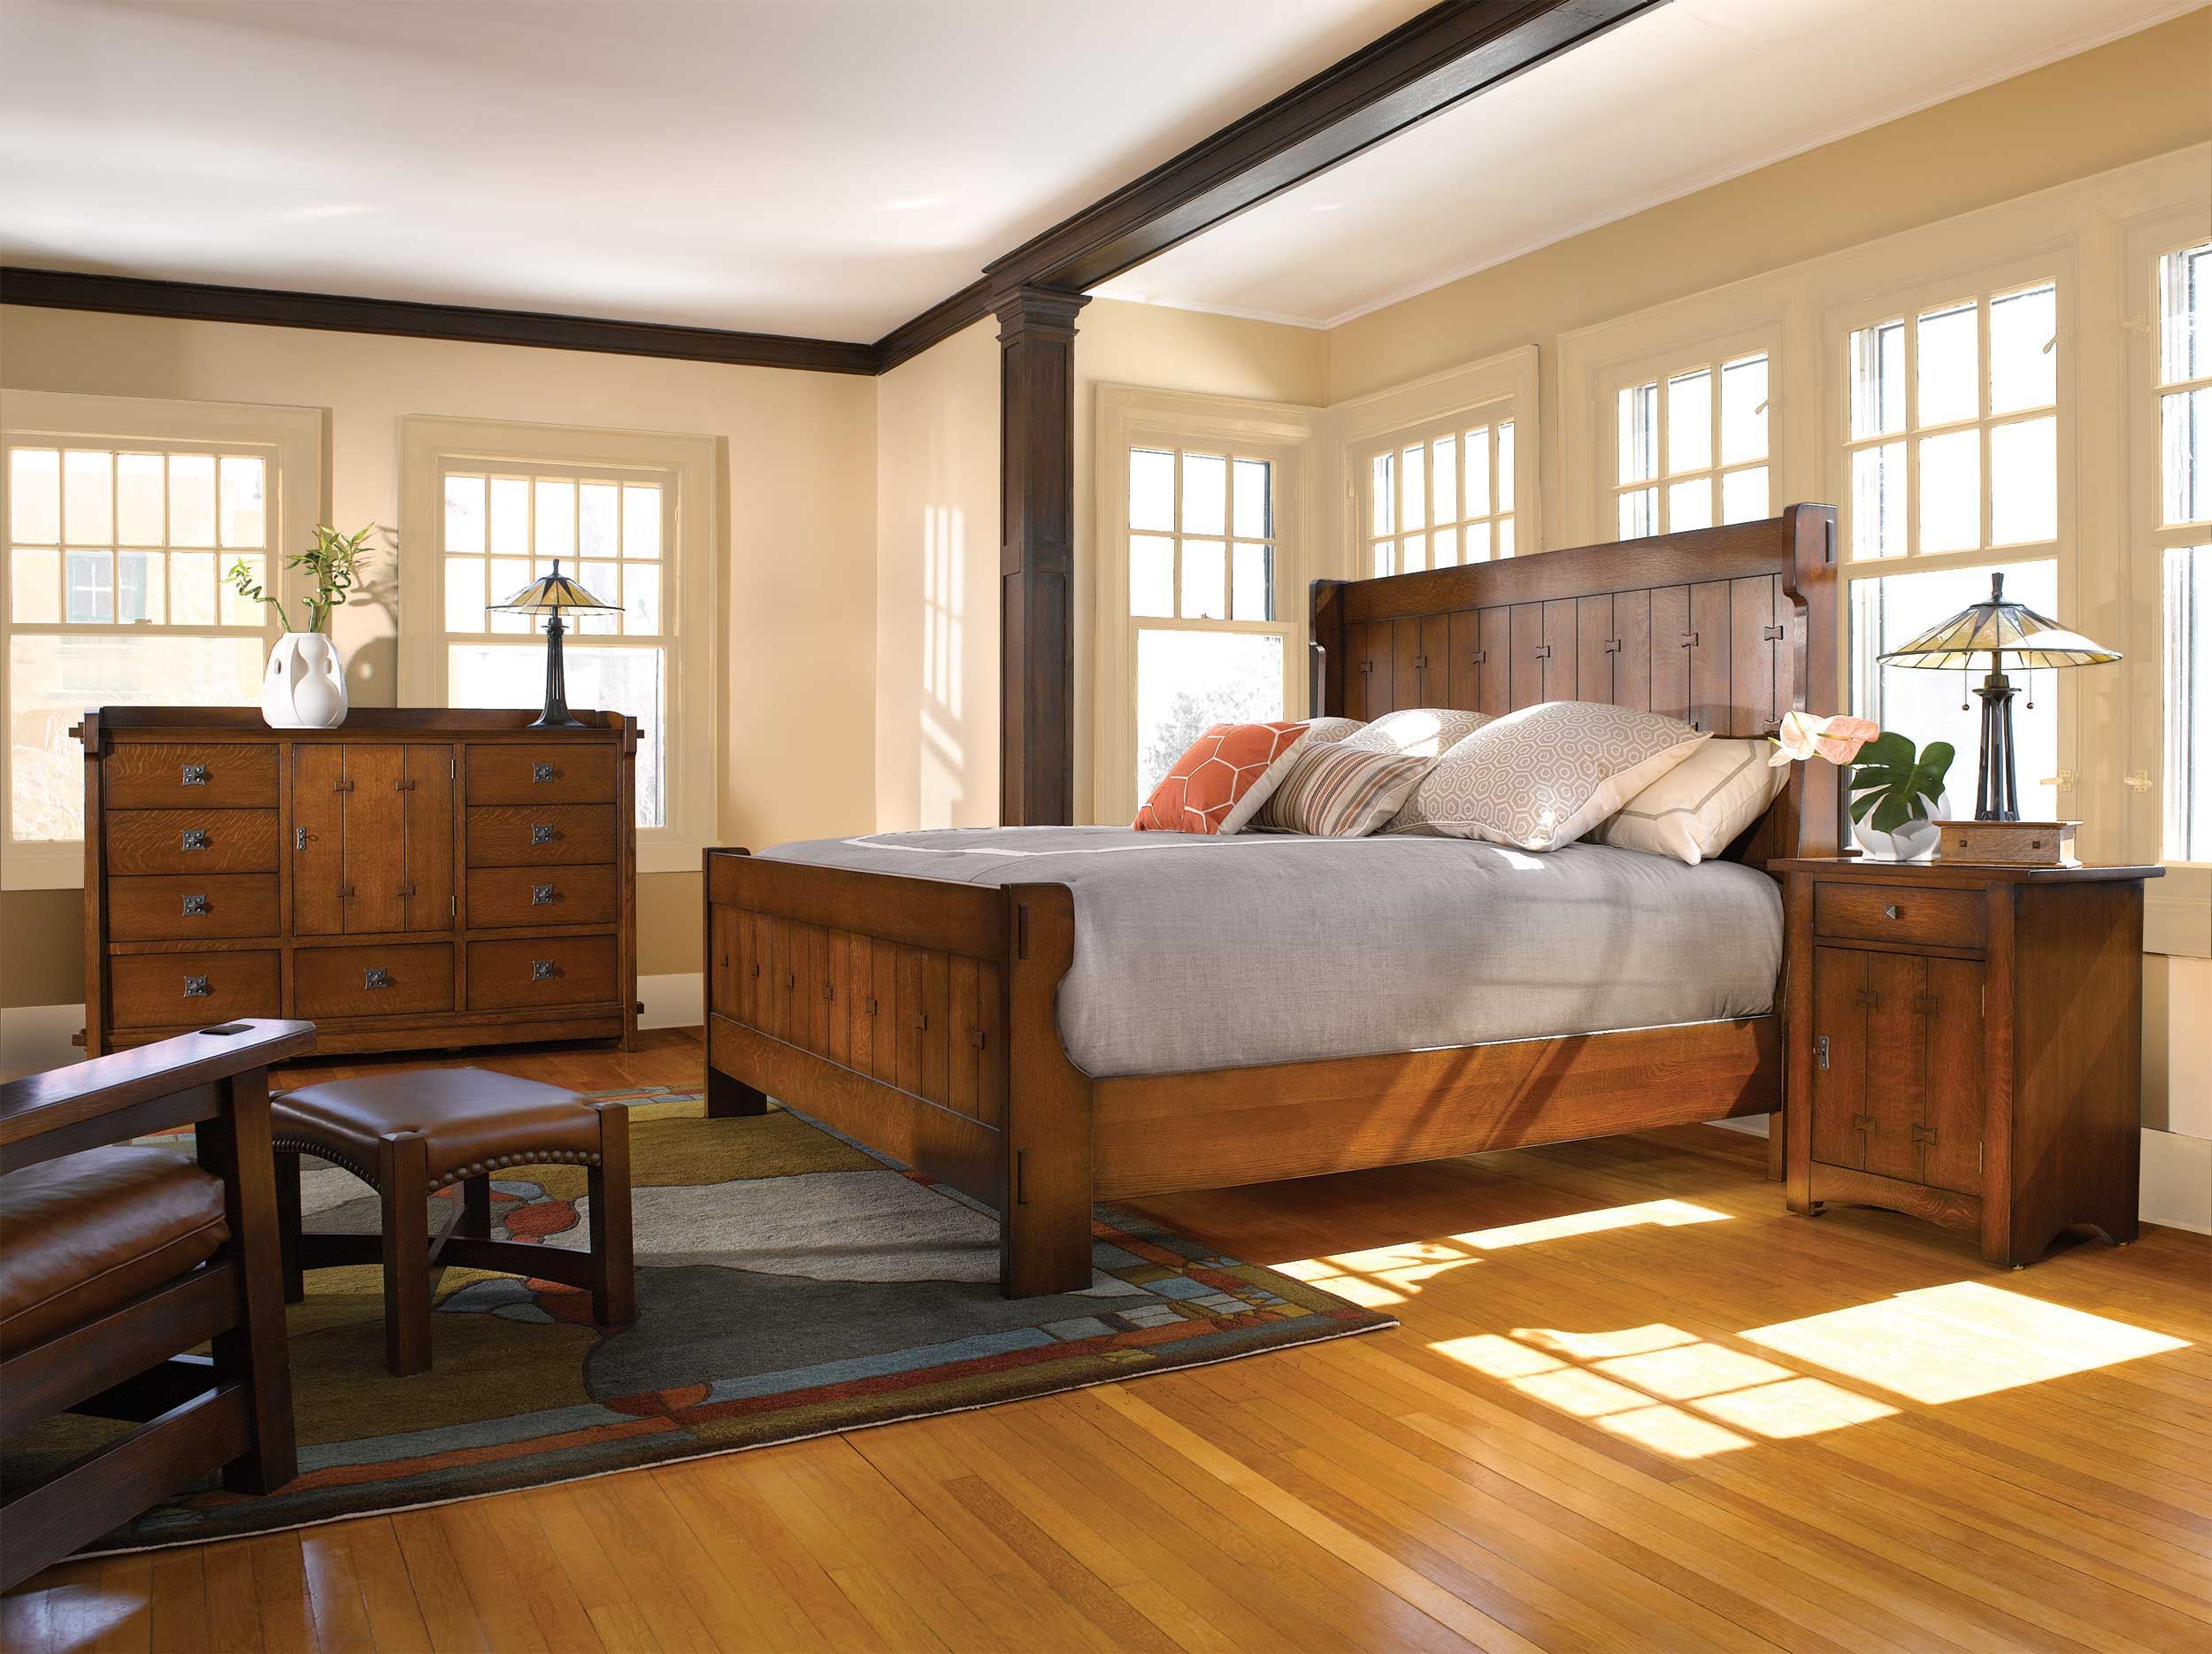 Stickley Gus Settle Bed | Get The Latest Stickley Furniture Designs At The Heritage  House Home